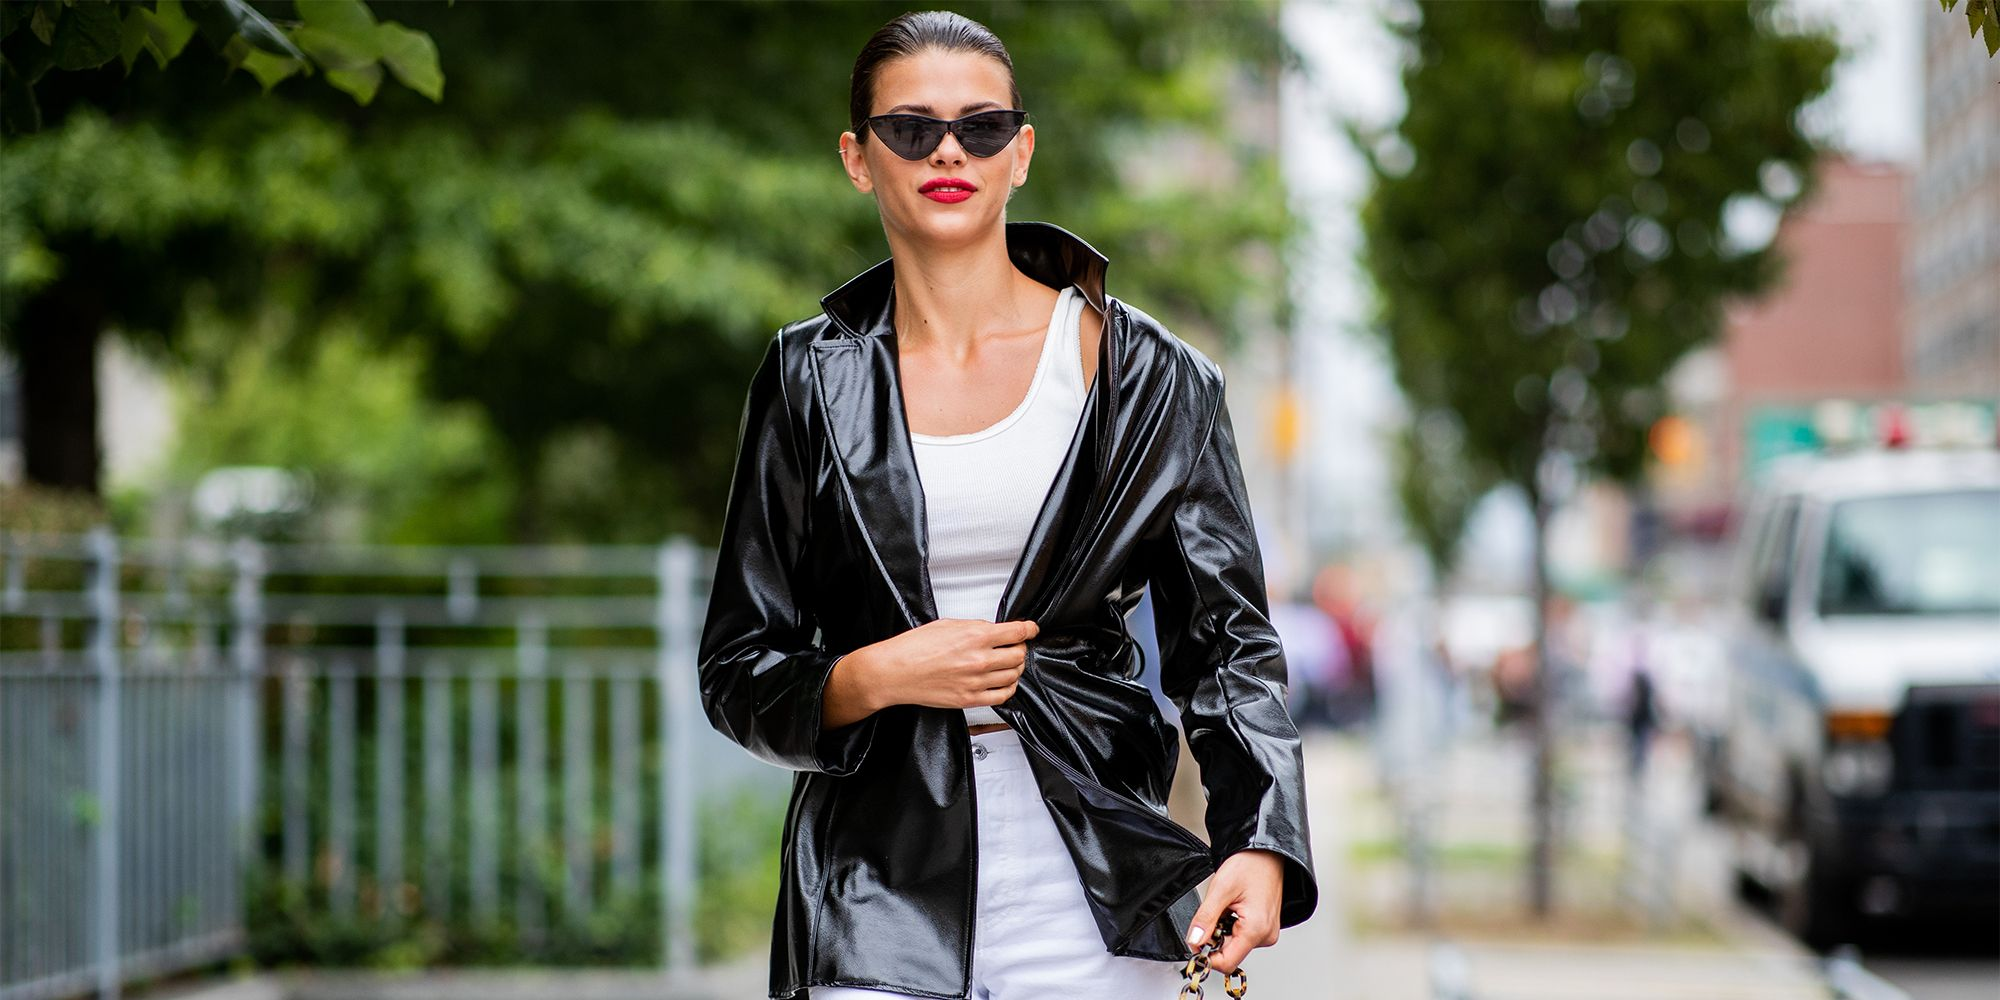 25 Leather Jackets Outfits for Women 2018 - How to Wear A Leather Jacket d67a338f679f